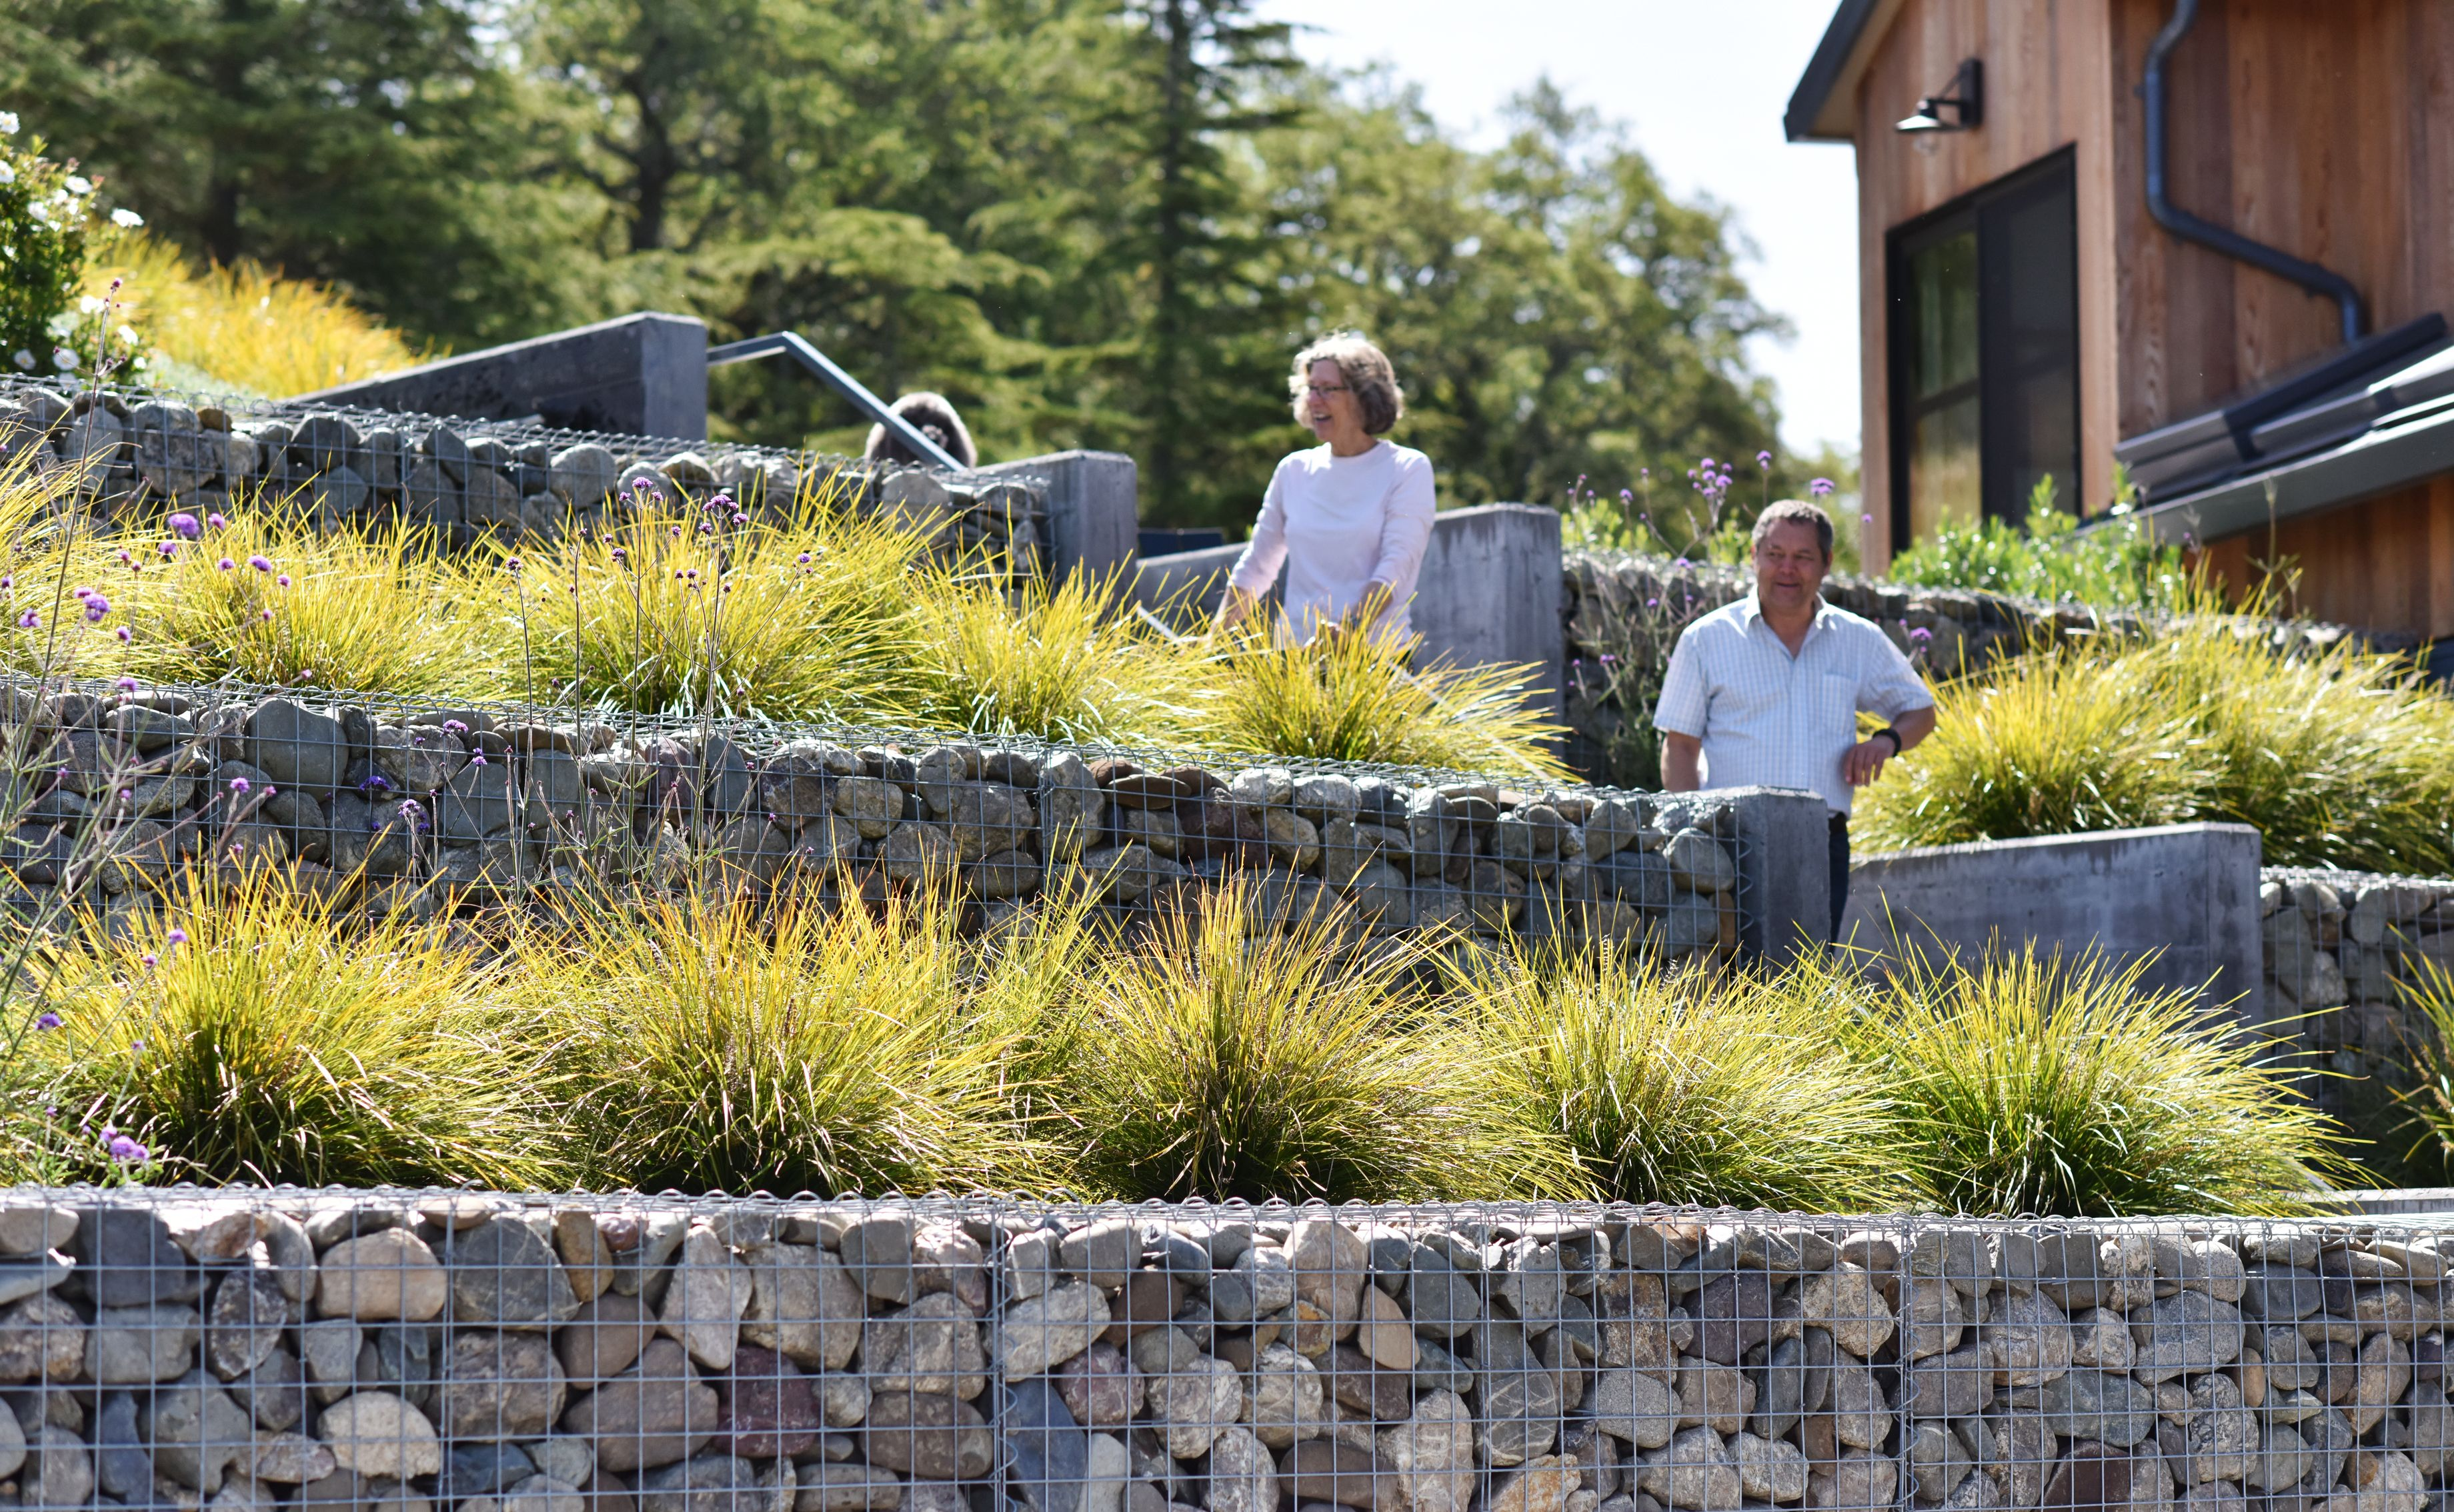 Gabion Wall Retaining Wall Planting Landscape Architecture Farm House Modern Landscaping Retaining Walls Lake Landscaping Hillside Landscaping